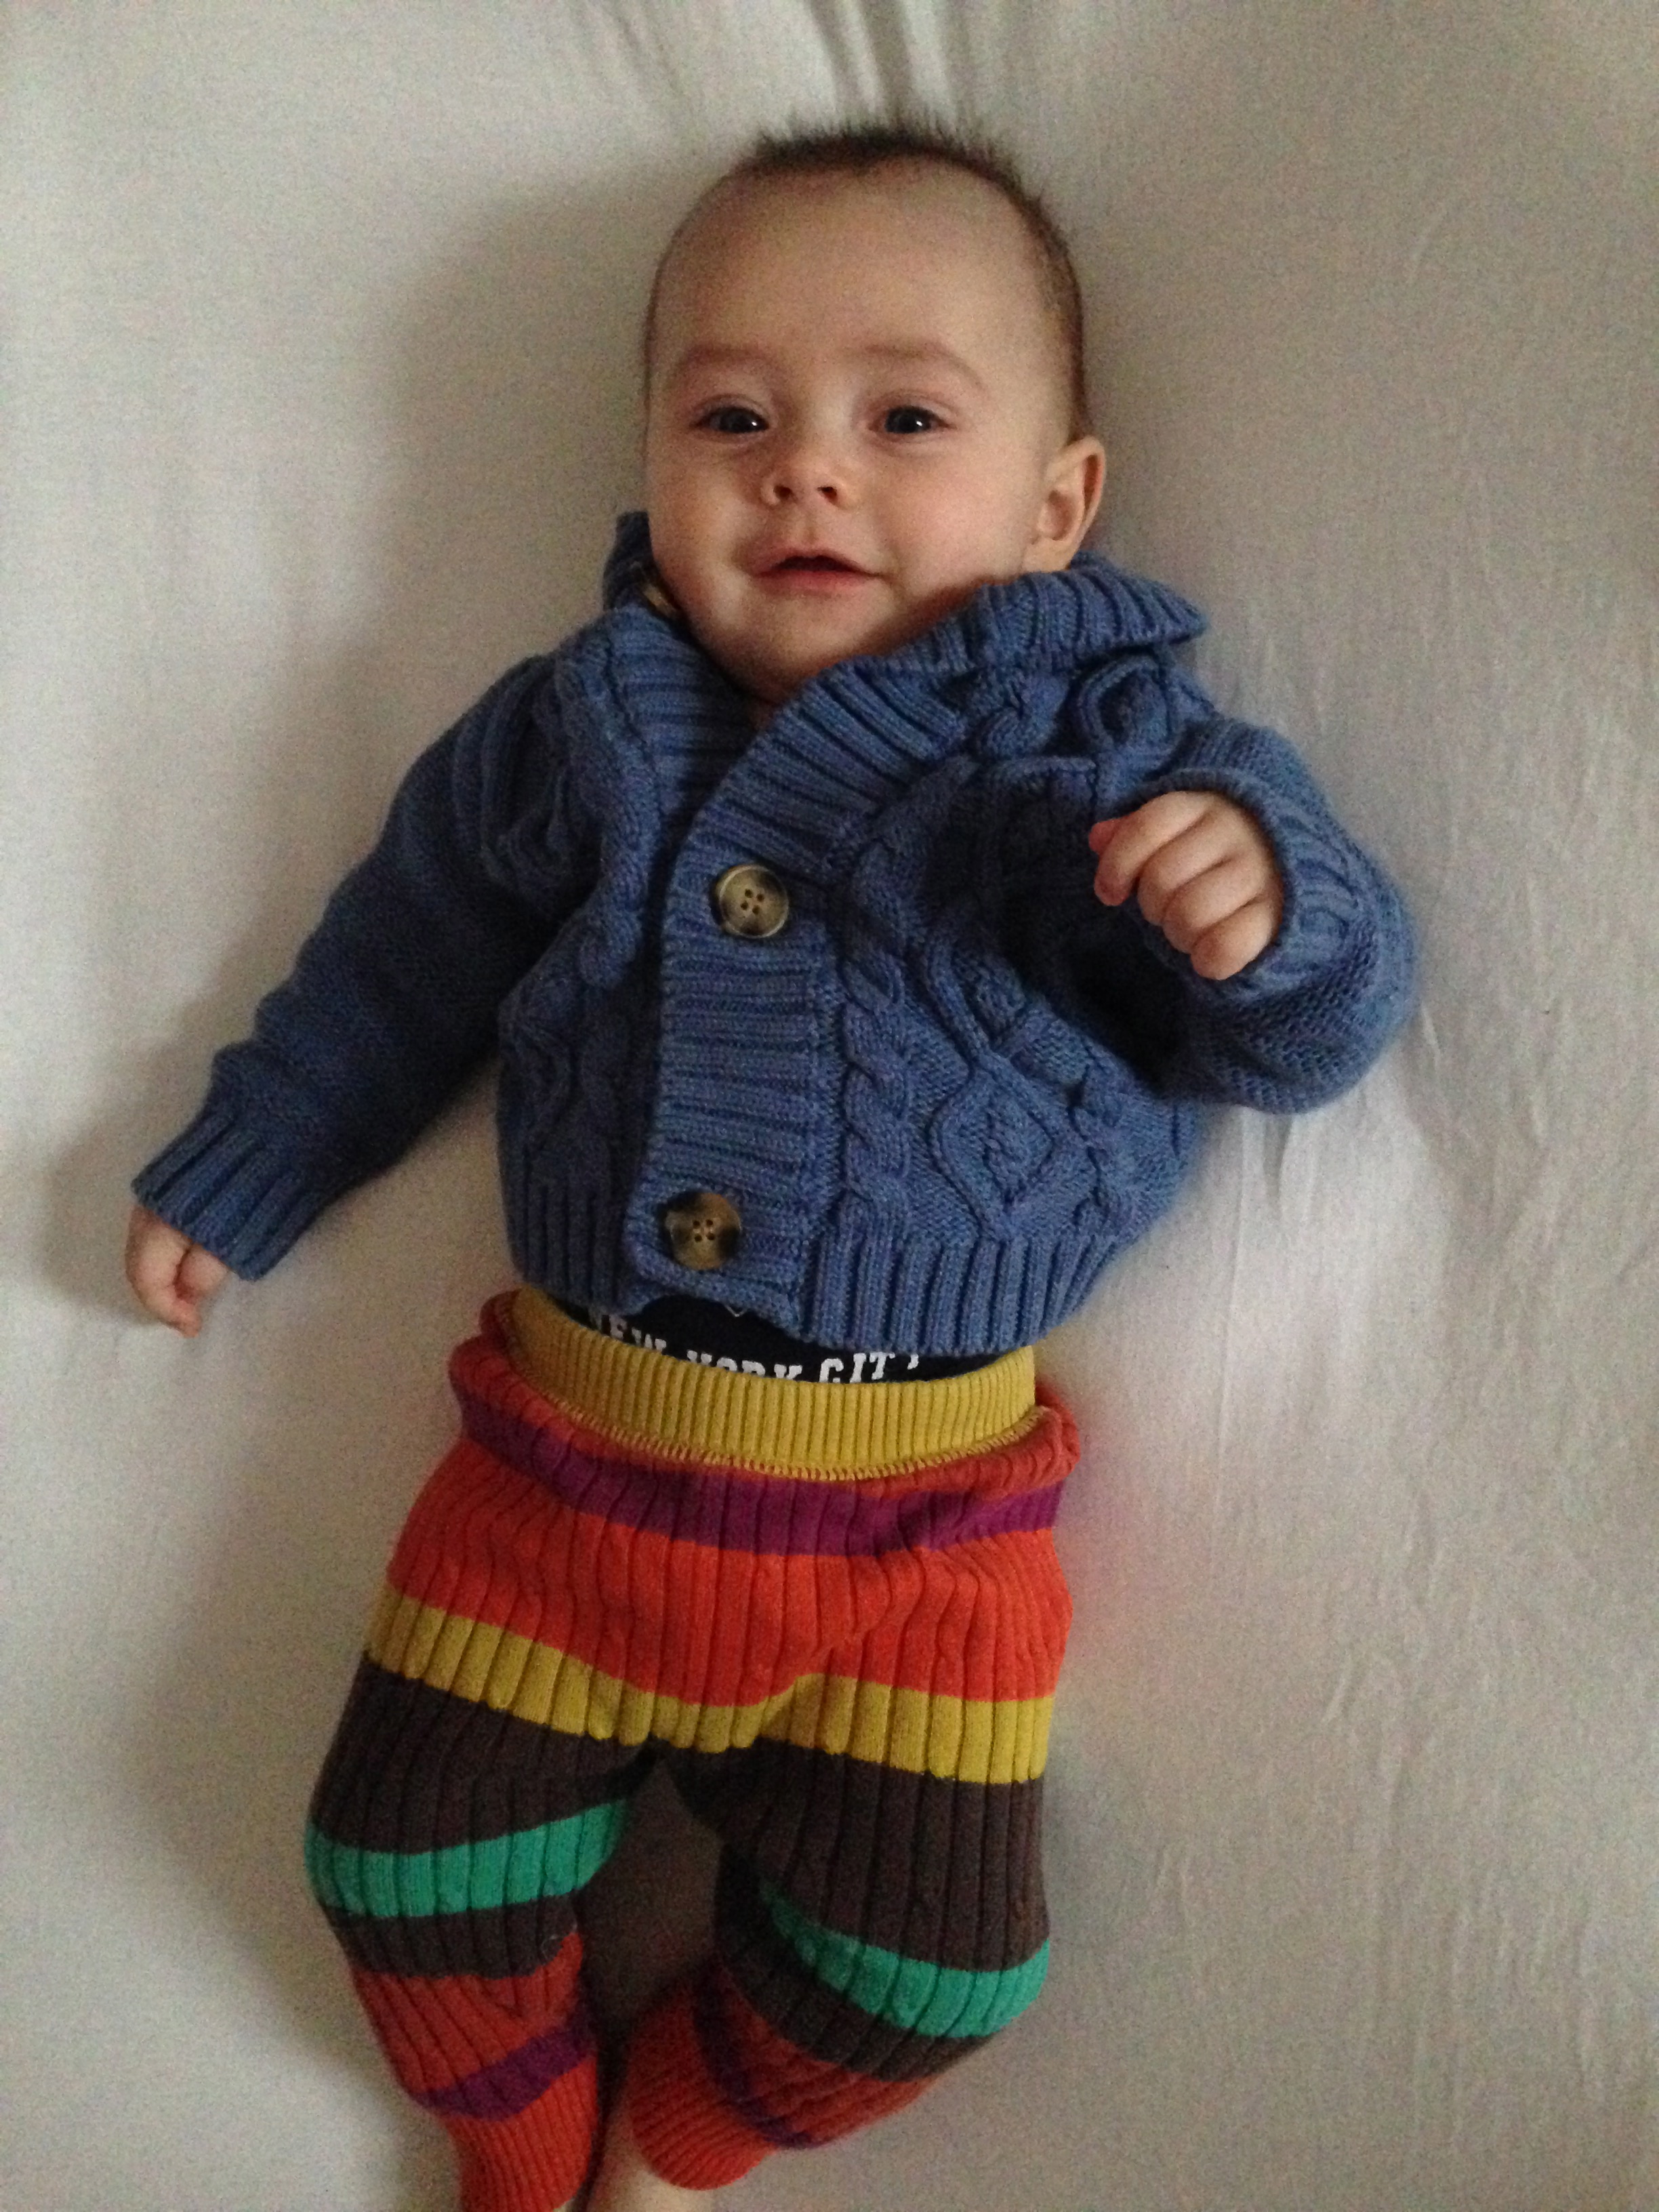 And the winner of the Best Dressed Baby Award is….